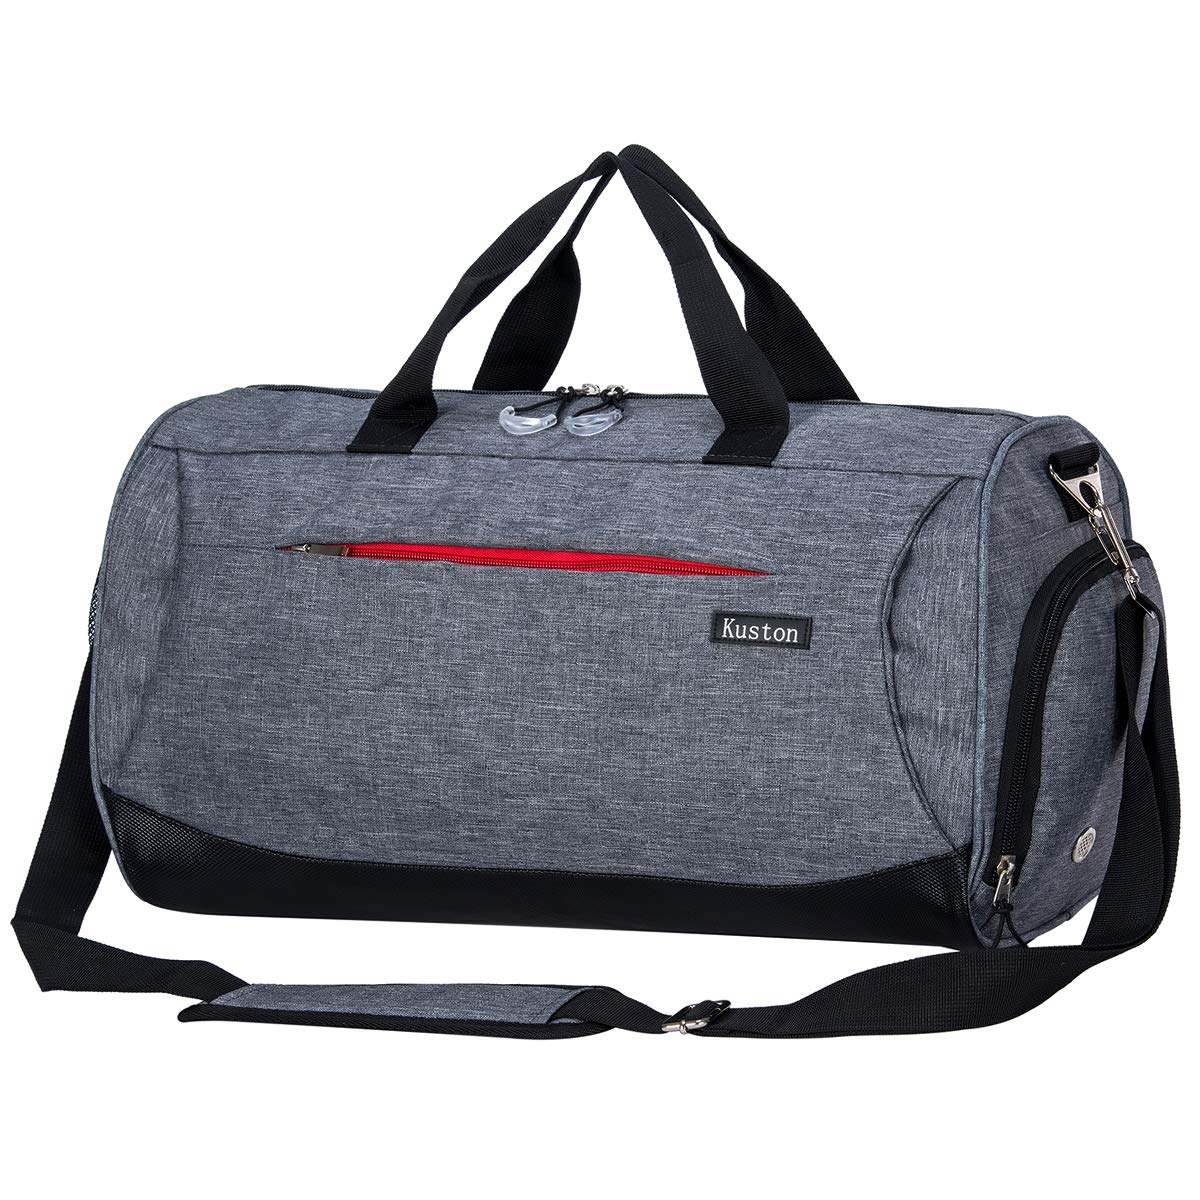 b7cc7f228329 Kuston Sports Gym Bag with Shoes Compartment Travel Duffel Bag for Men and  Women product image